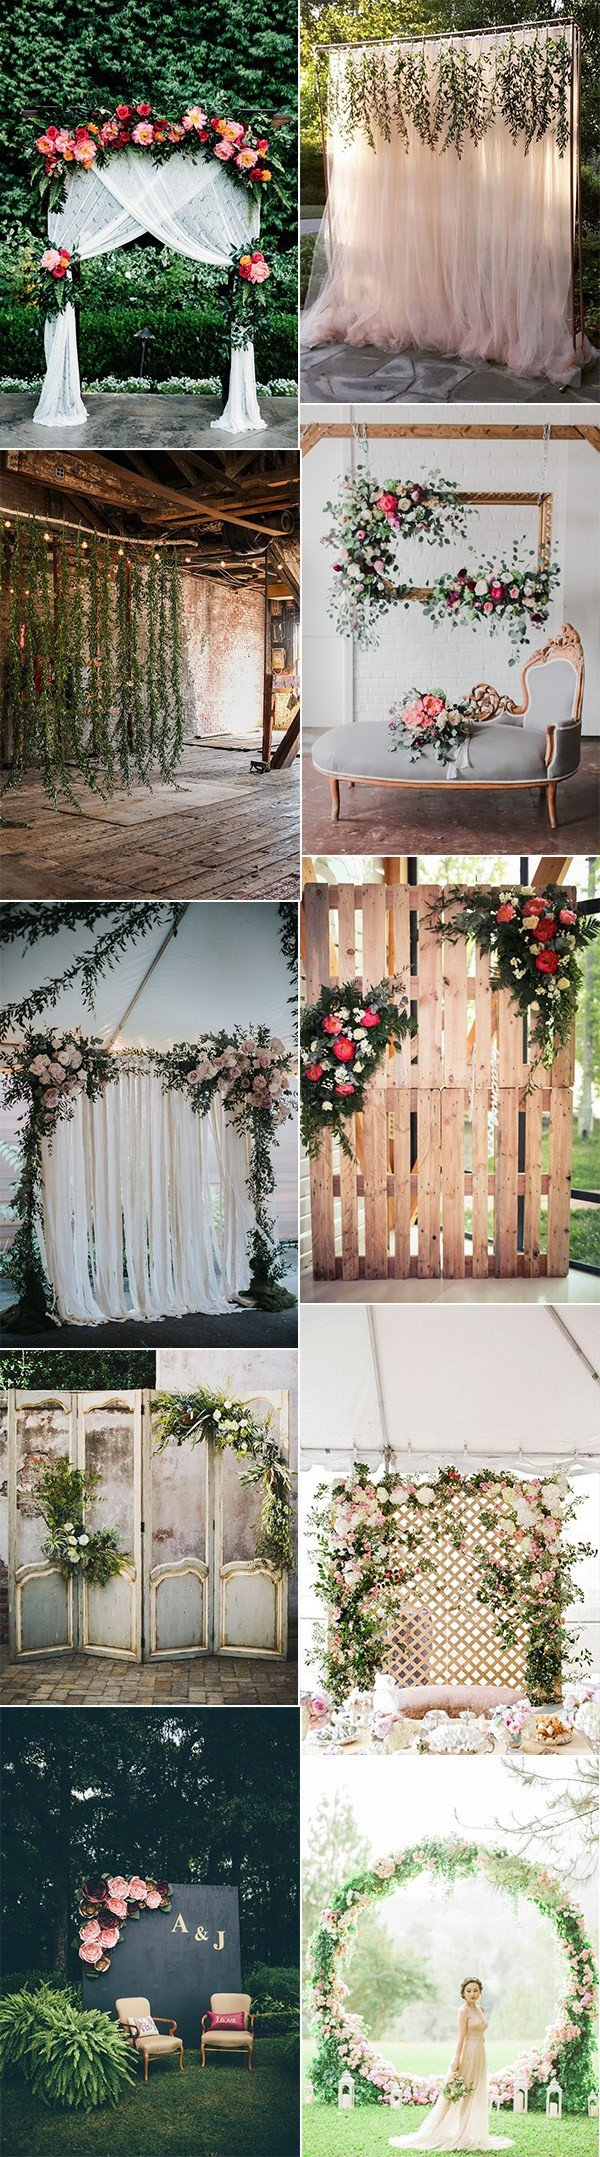 Wedding Backdrop Ideas Trending 15 Hottest Wedding Backdrop Ideas For Your Ceremony Oh